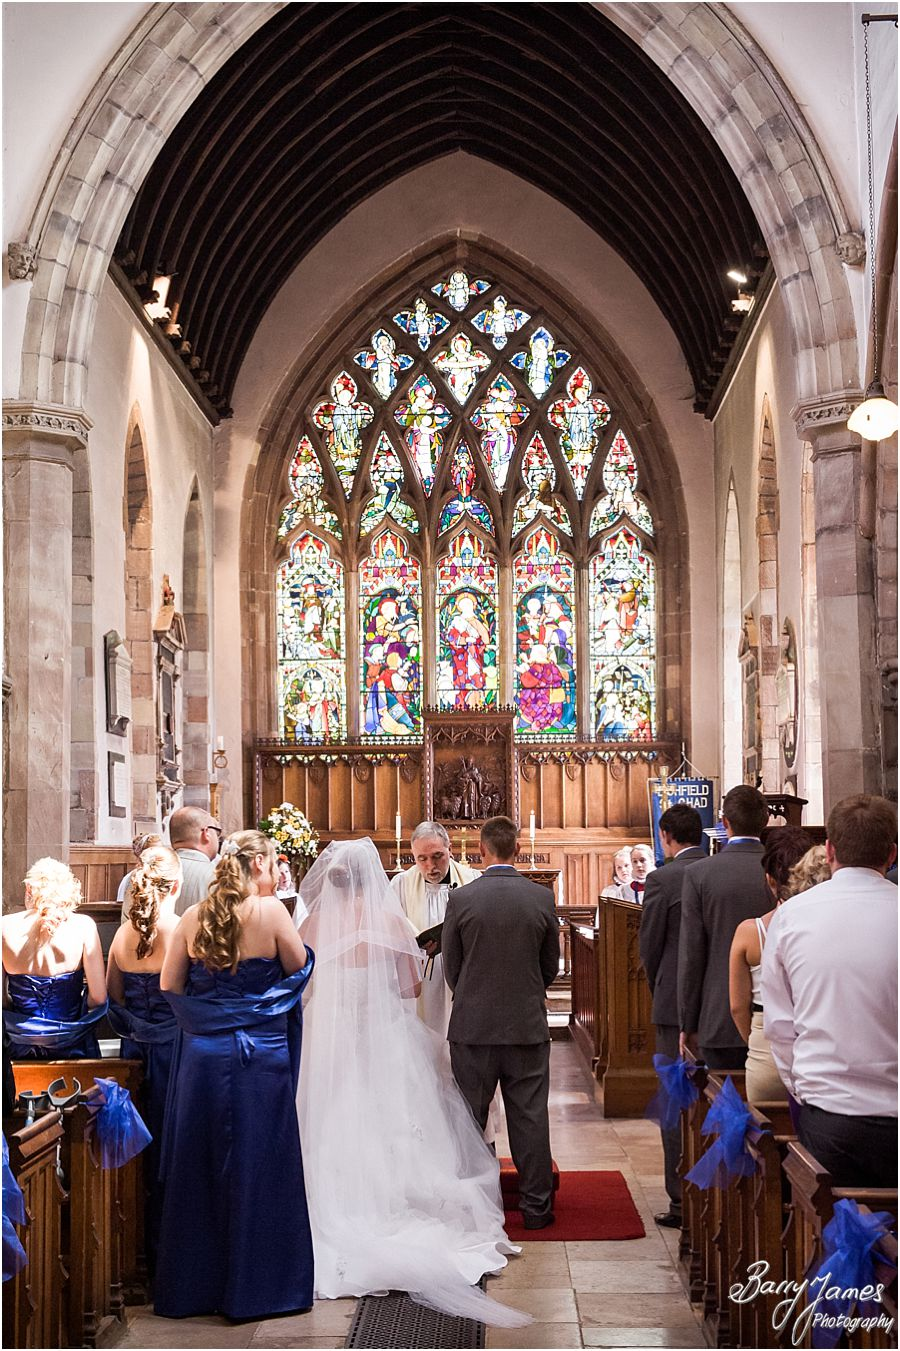 Creating timeless wedding photographs at St Chads Church in Lichfield by Contemporary and Creative Wedding Photographer Barry James